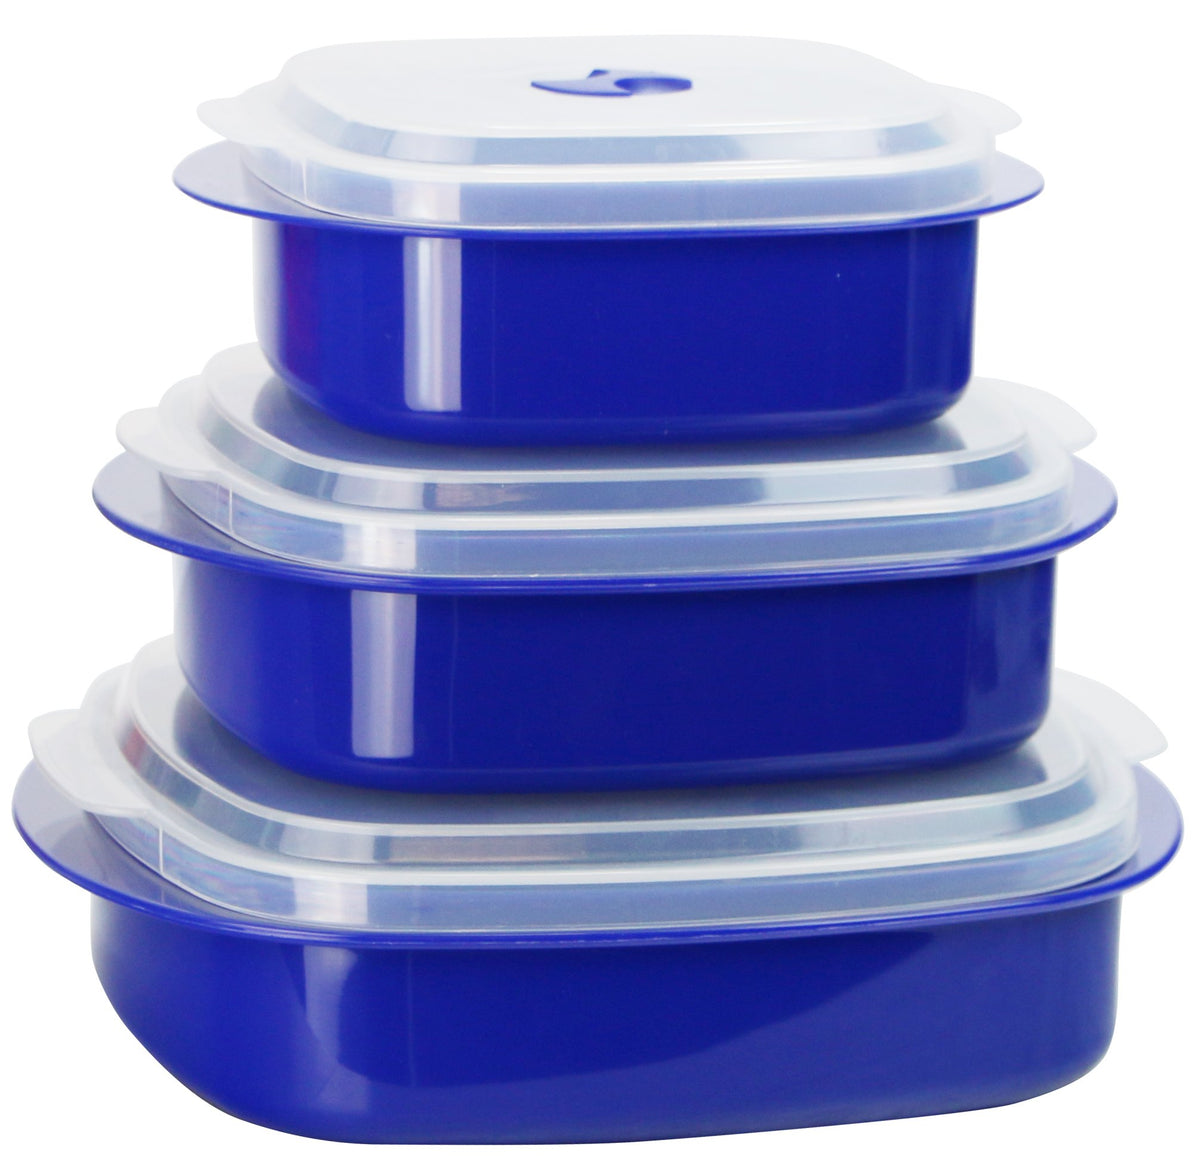 Reston Lloyd - Calypso Microwave Cookware & Storage Set